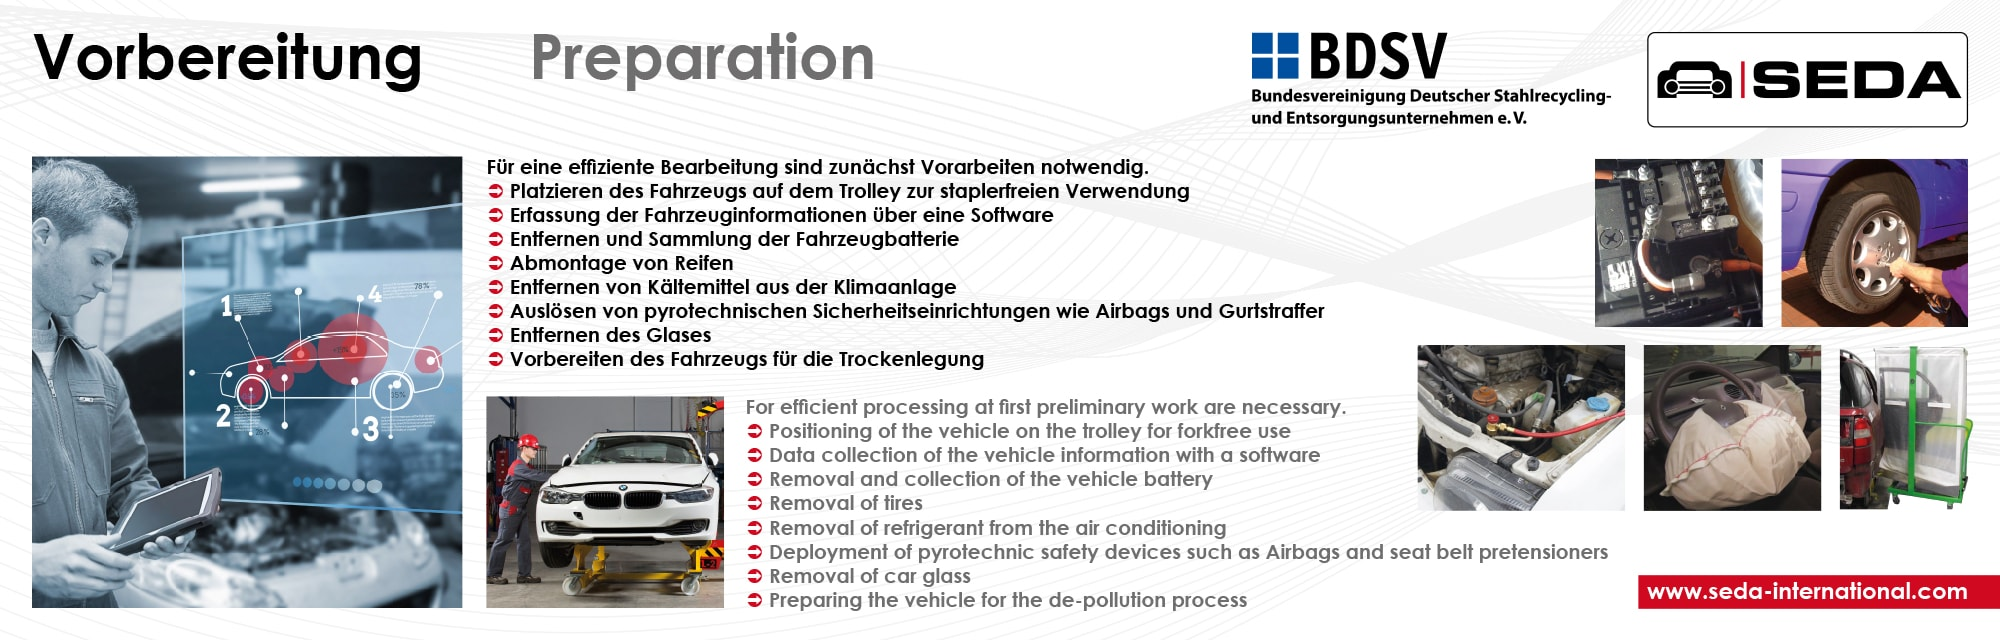 IFAT2016 Station 2 Vorbereitung min - SEDA presented car recycling LIVE at IFAT 2016